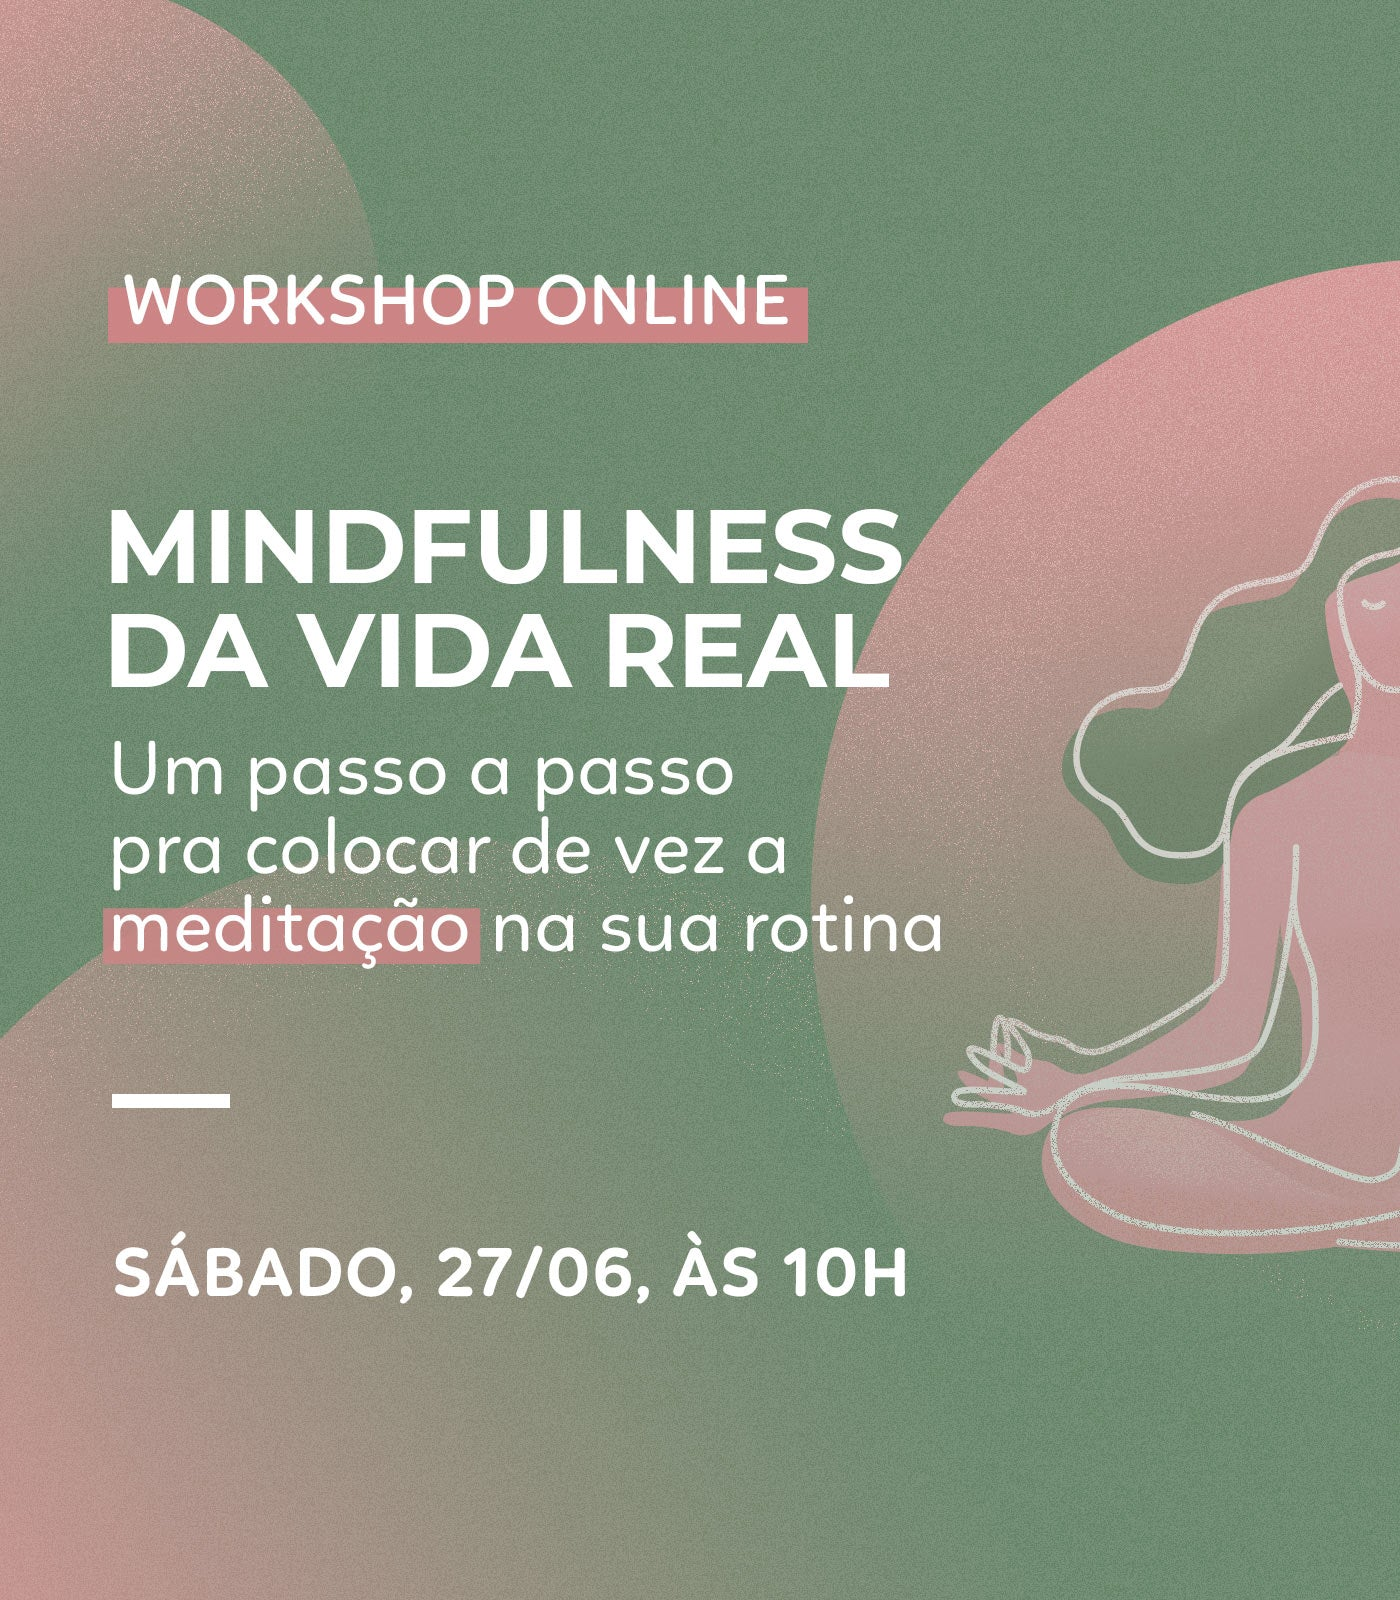 WORKSHOP: Mindfulness da vida real